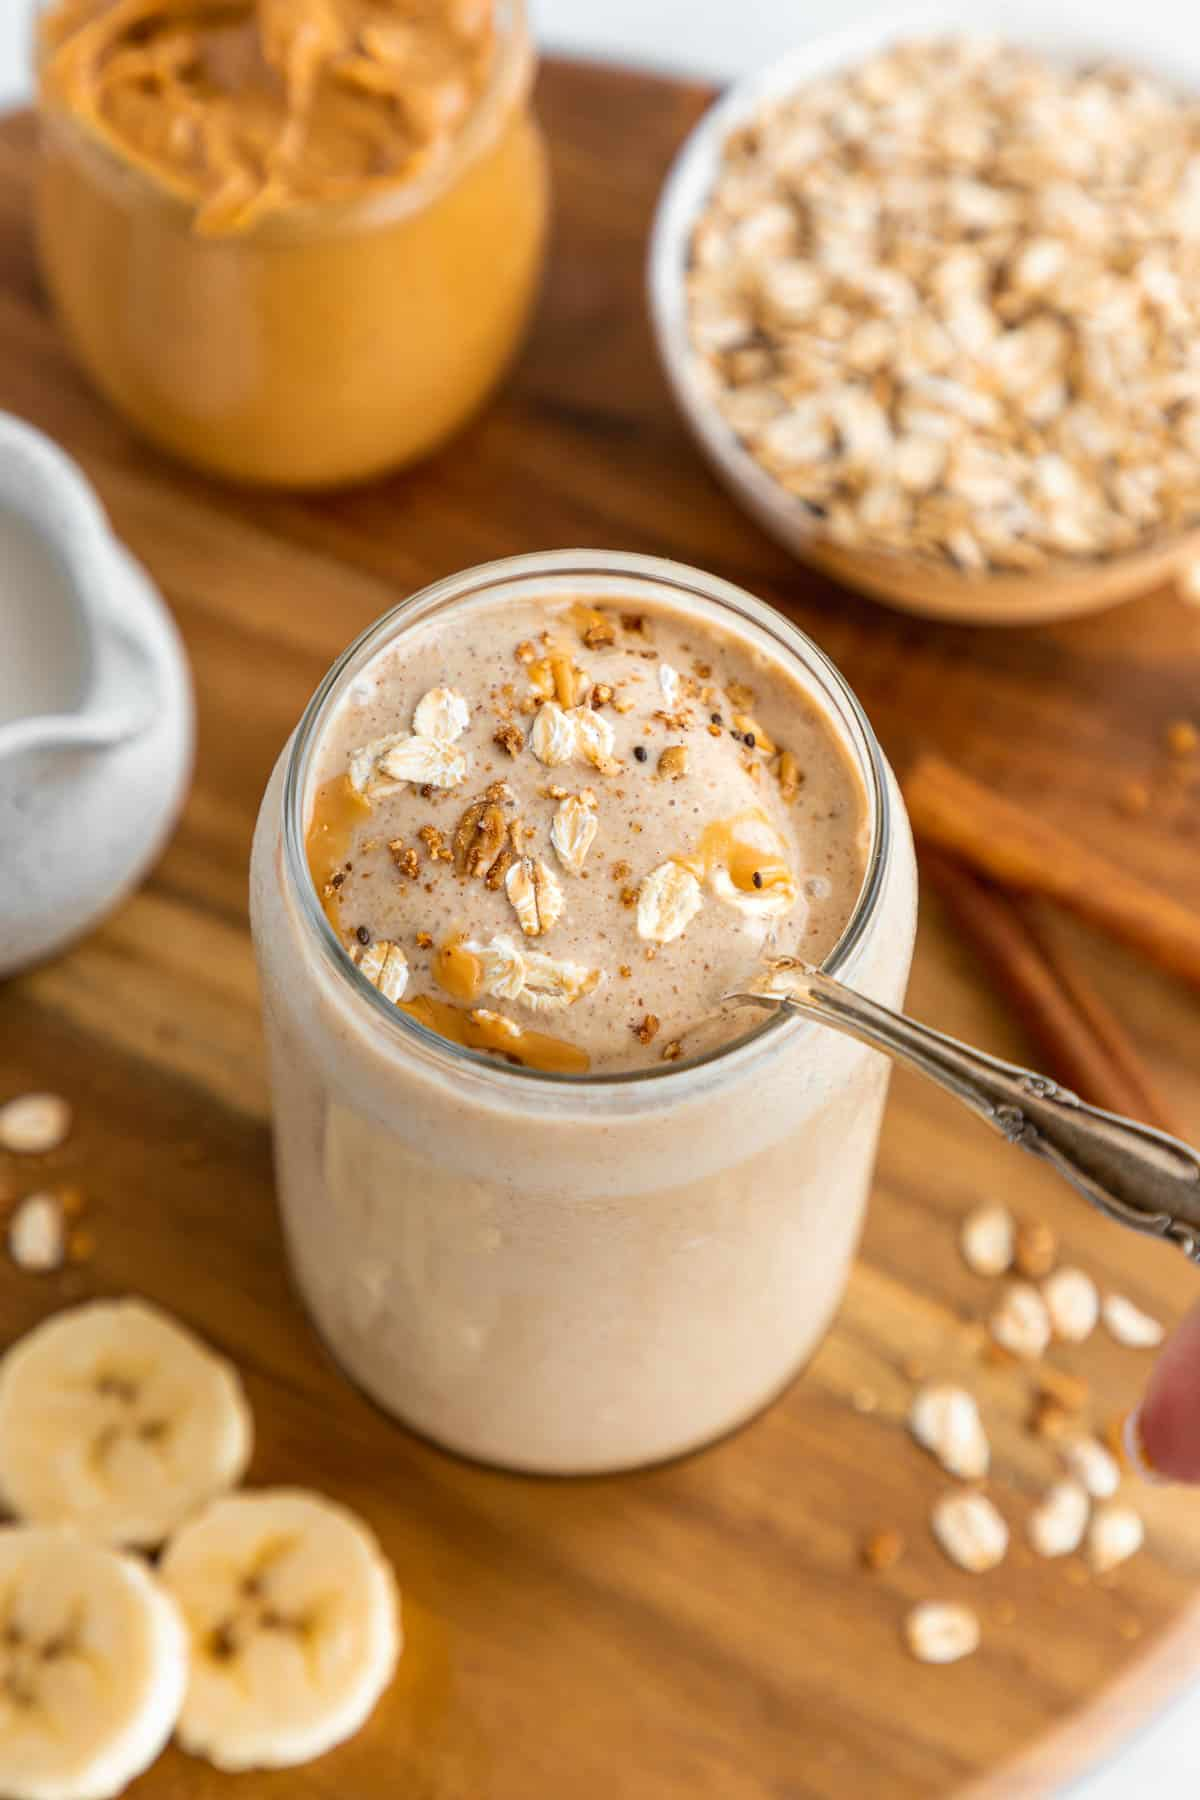 a spoon scooping into a peanut butter oatmeal smoothie inside a glass